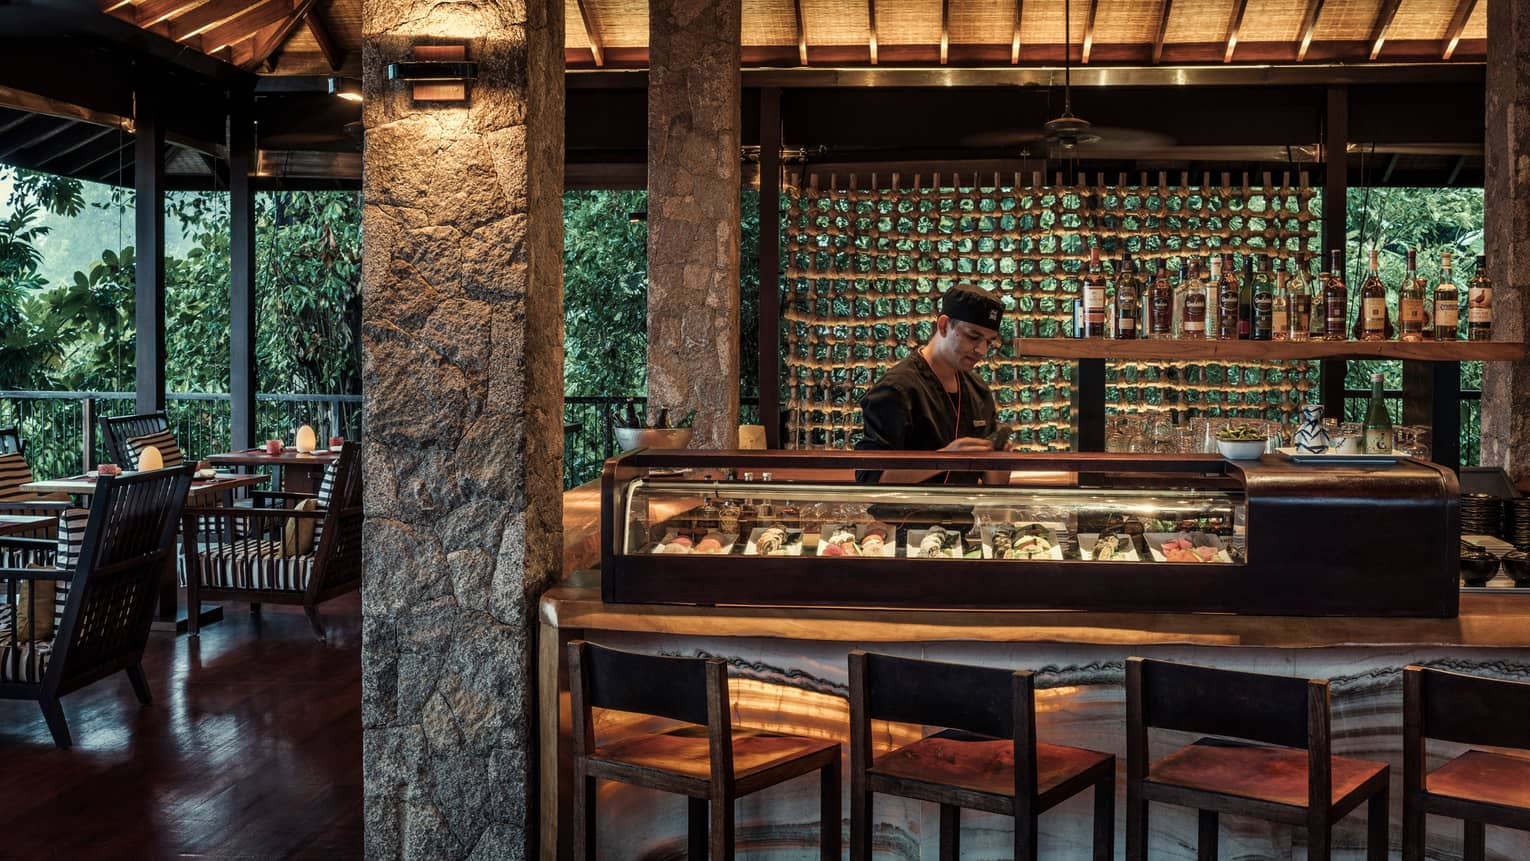 Sushi chef in black uniform stands in front of glass case in ZEZ Bar dining lounge at night